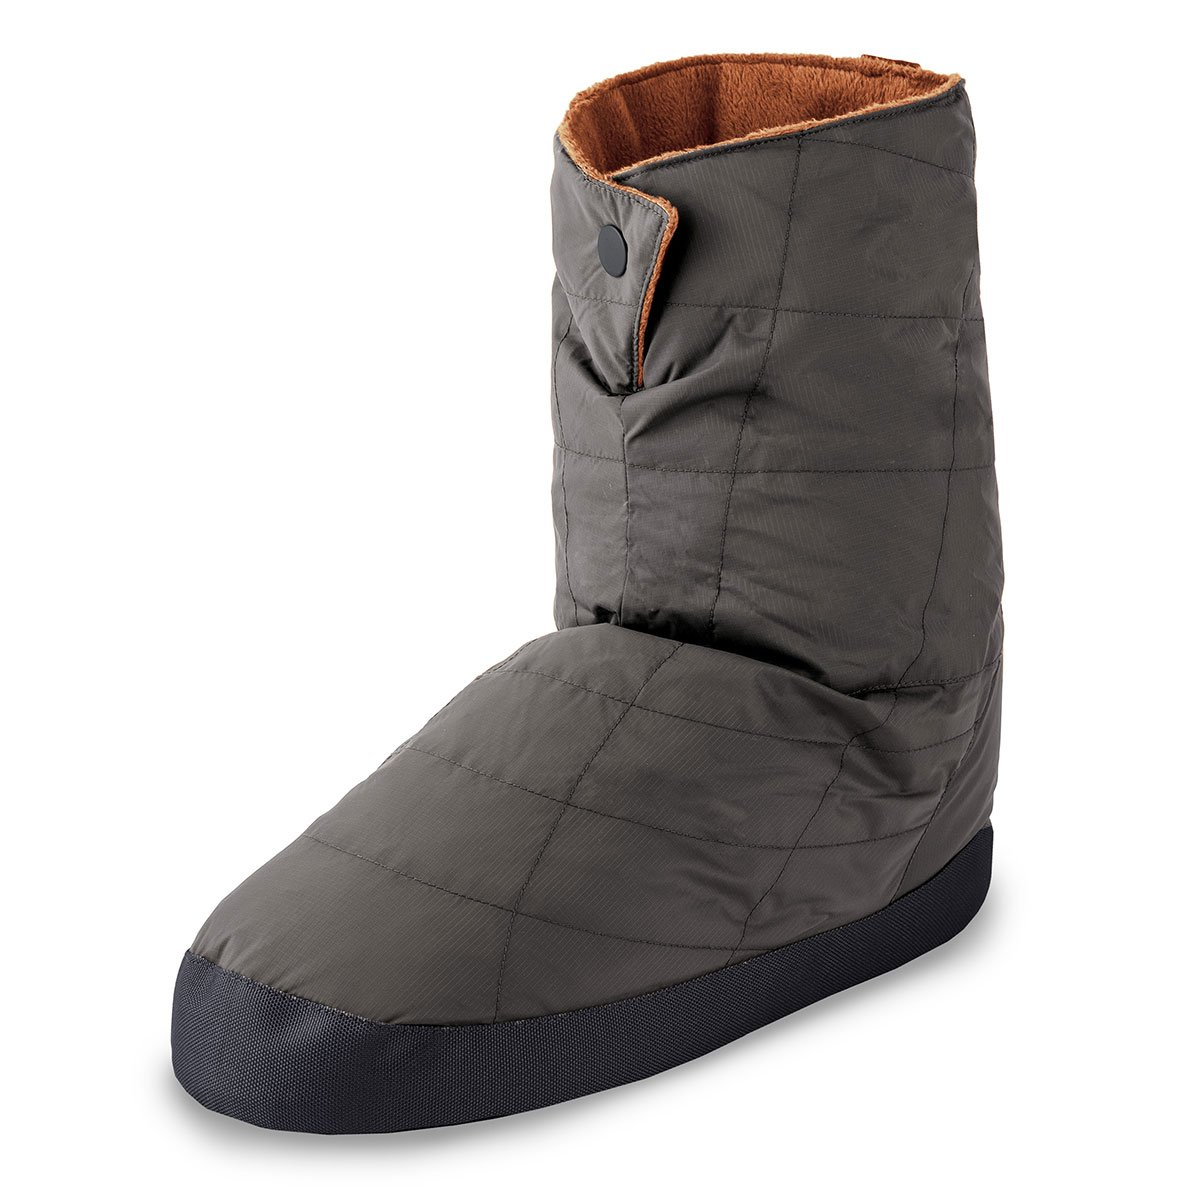 Cabiniste Men's Down Insulated Bootie (Medium, Pewter/Copper) by Cabiniste (Image #1)